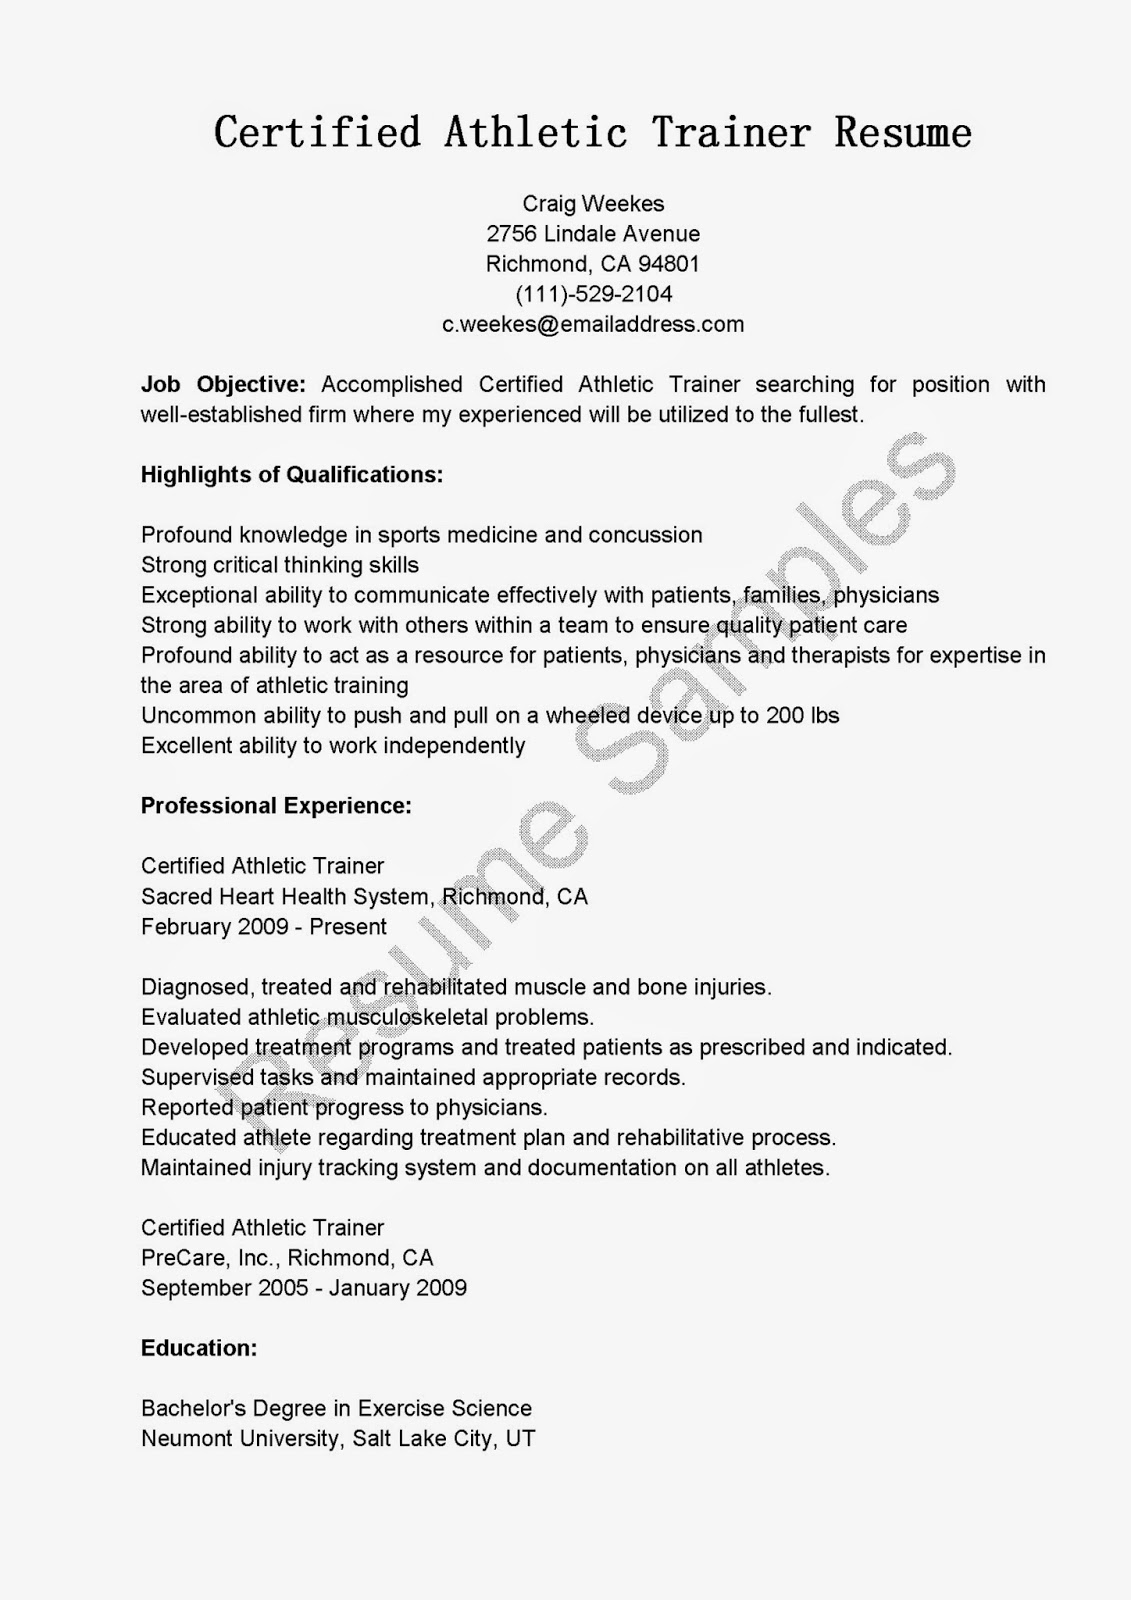 Resume Samples Certified Athletic Trainer Resume Sample